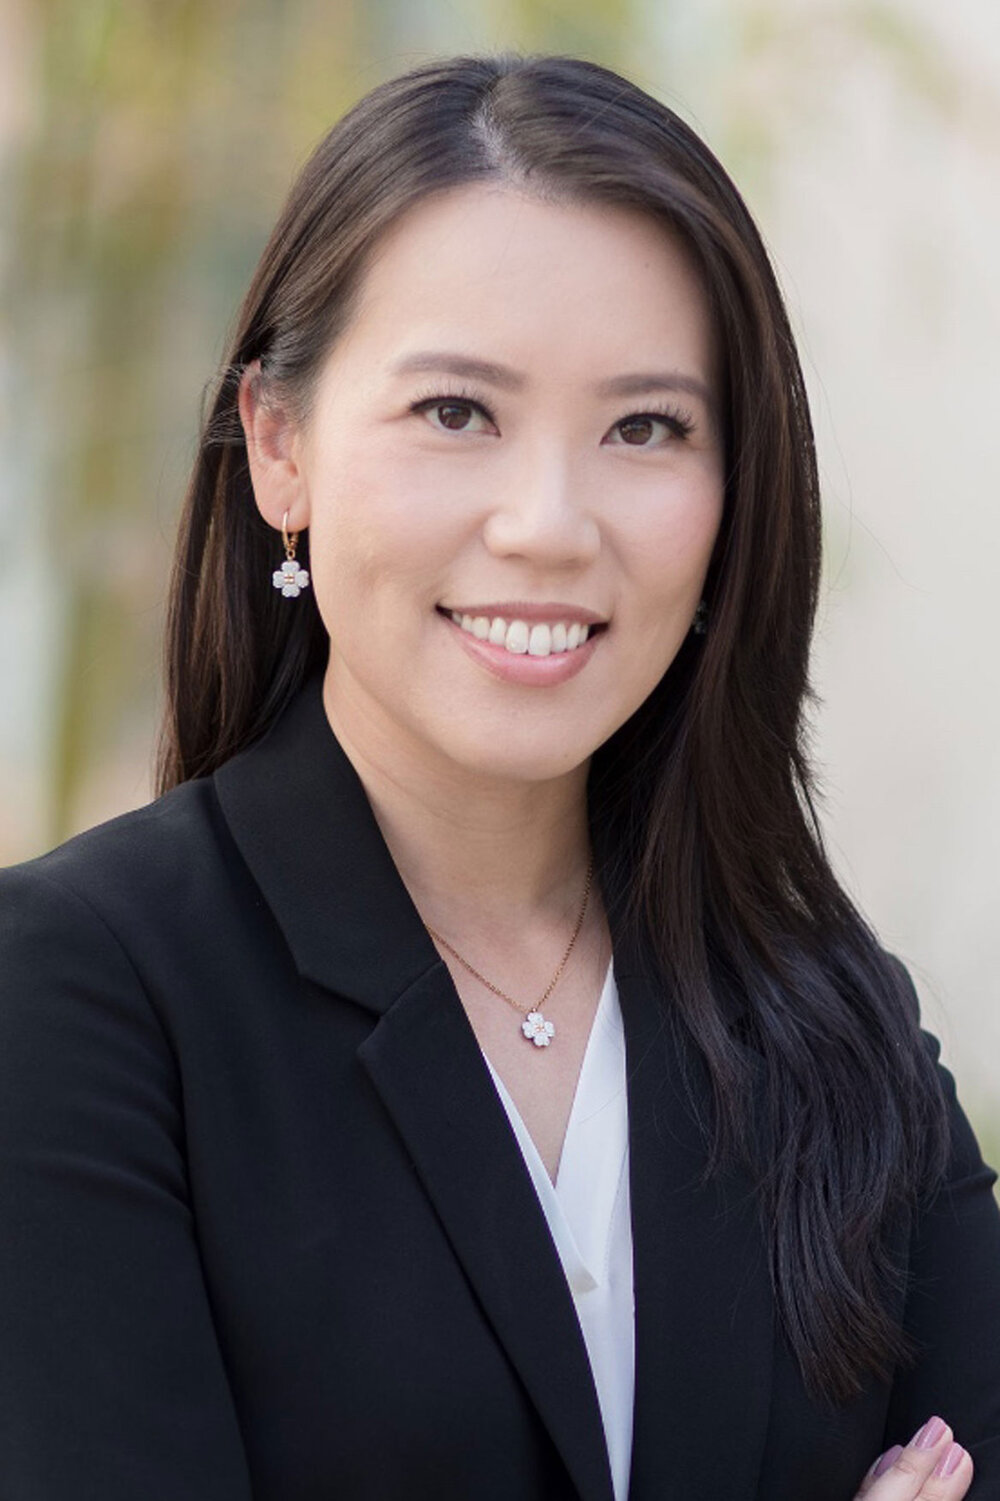 jennifer-fu-rosemead-estate-planning-attorney-amity-law-group-los-angeles